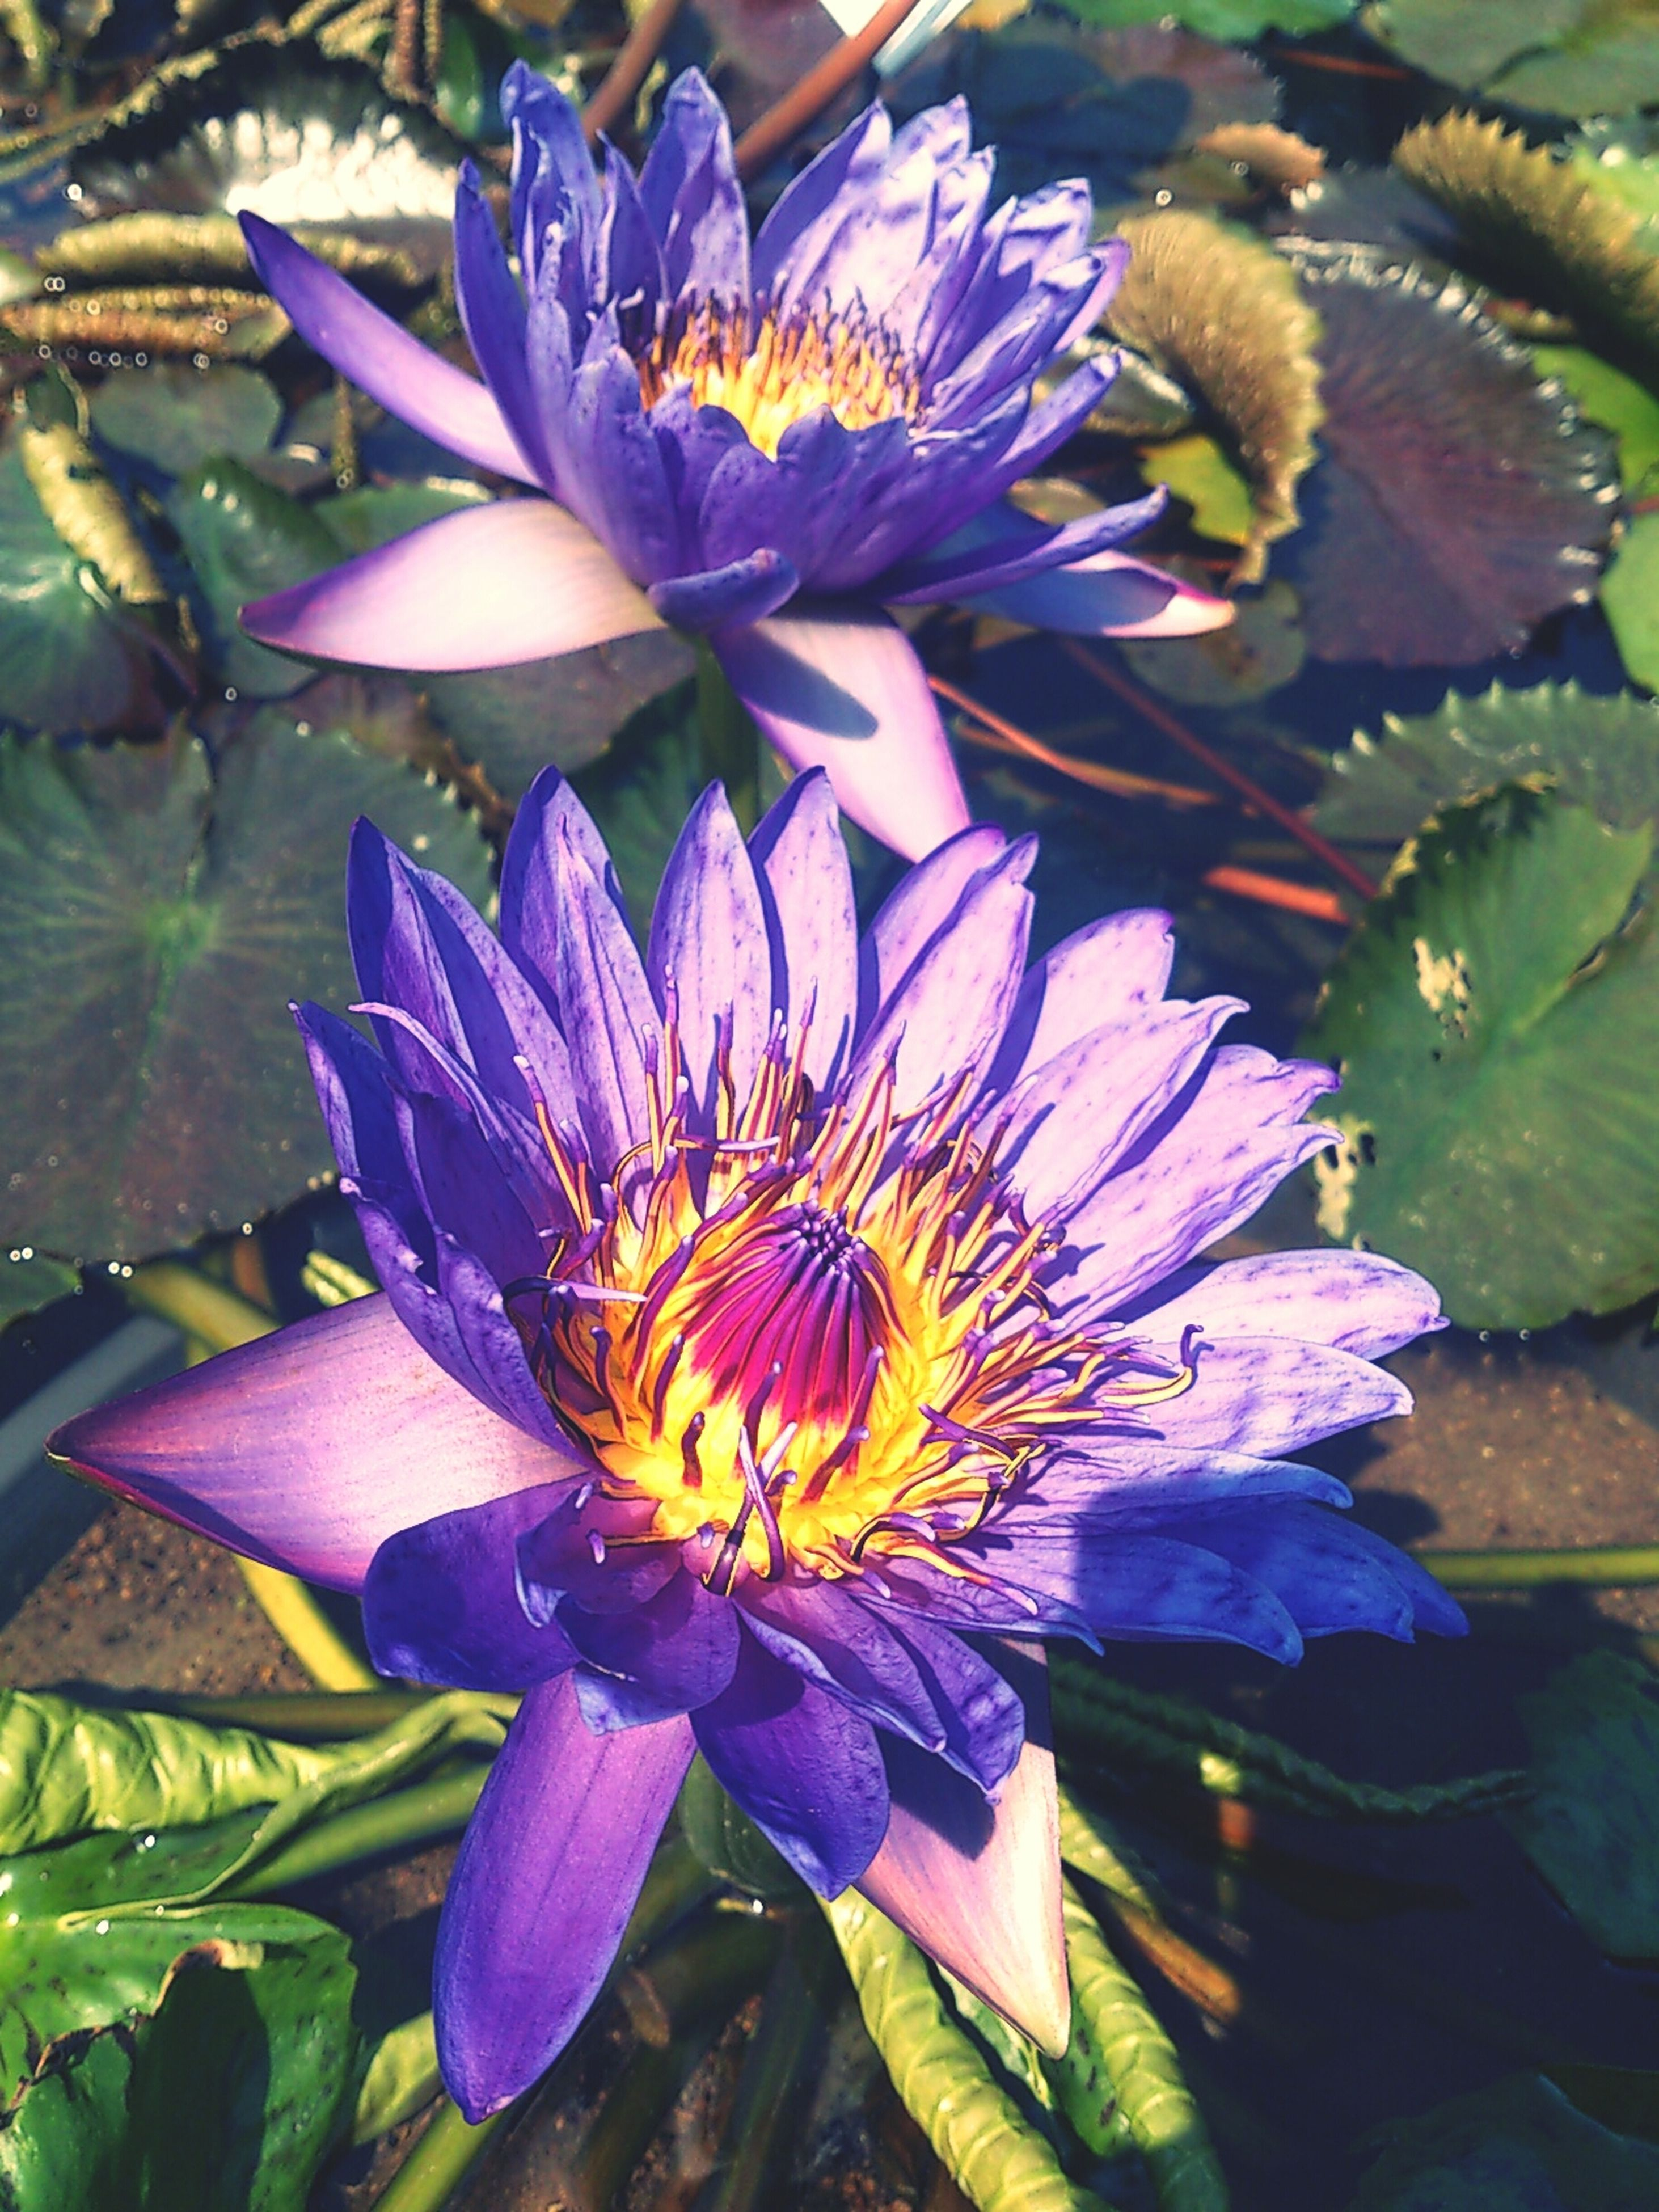 flower, petal, freshness, flower head, fragility, water lily, purple, growth, beauty in nature, water, pollen, blooming, pond, close-up, plant, nature, leaf, lotus water lily, single flower, high angle view